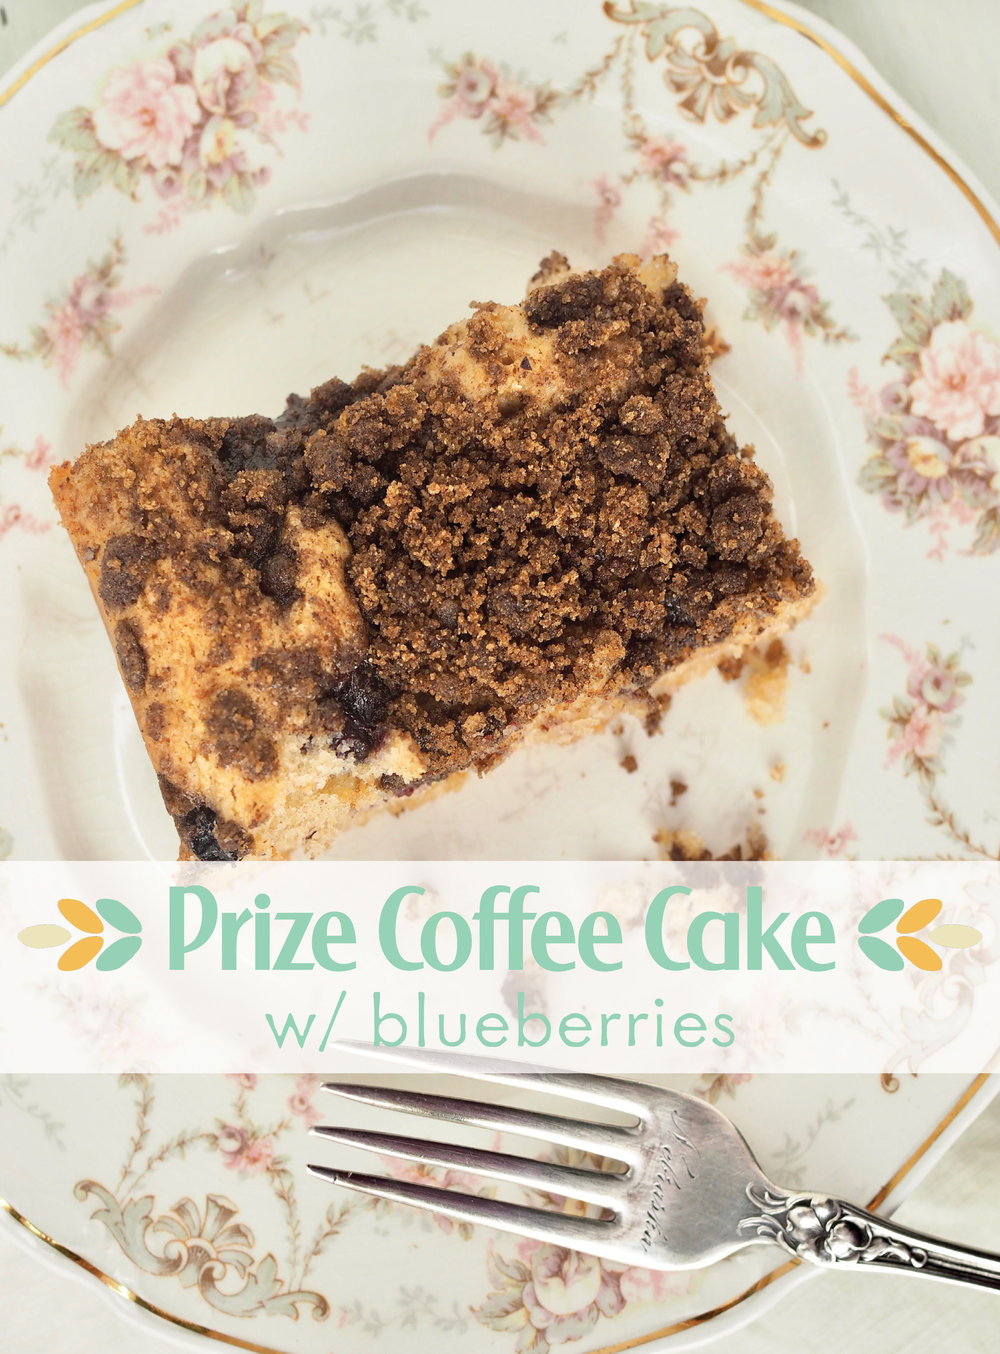 Prize Coffee Cake with Blueberries